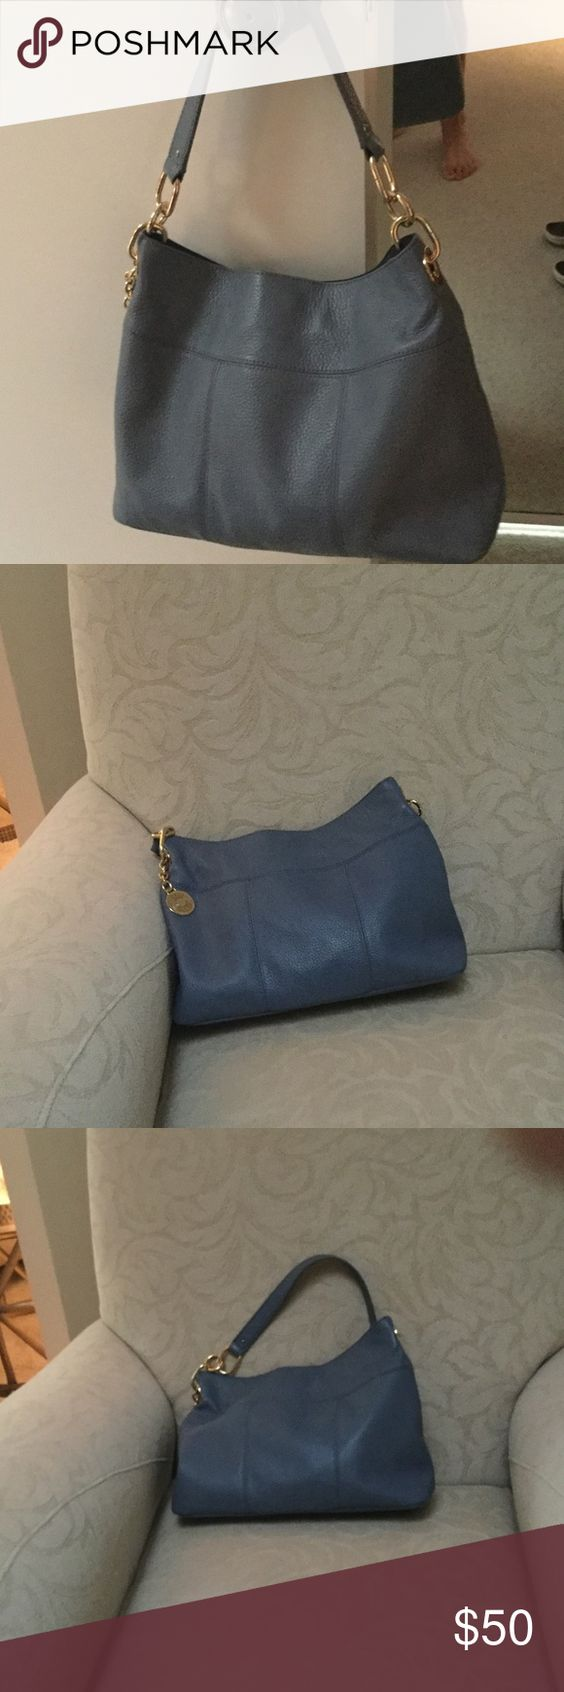 Tommy Hilfiger hobo bag Blue hobo style bag, only used 3 or4 times in like new condition Tommy Hilfiger Bags Hobos